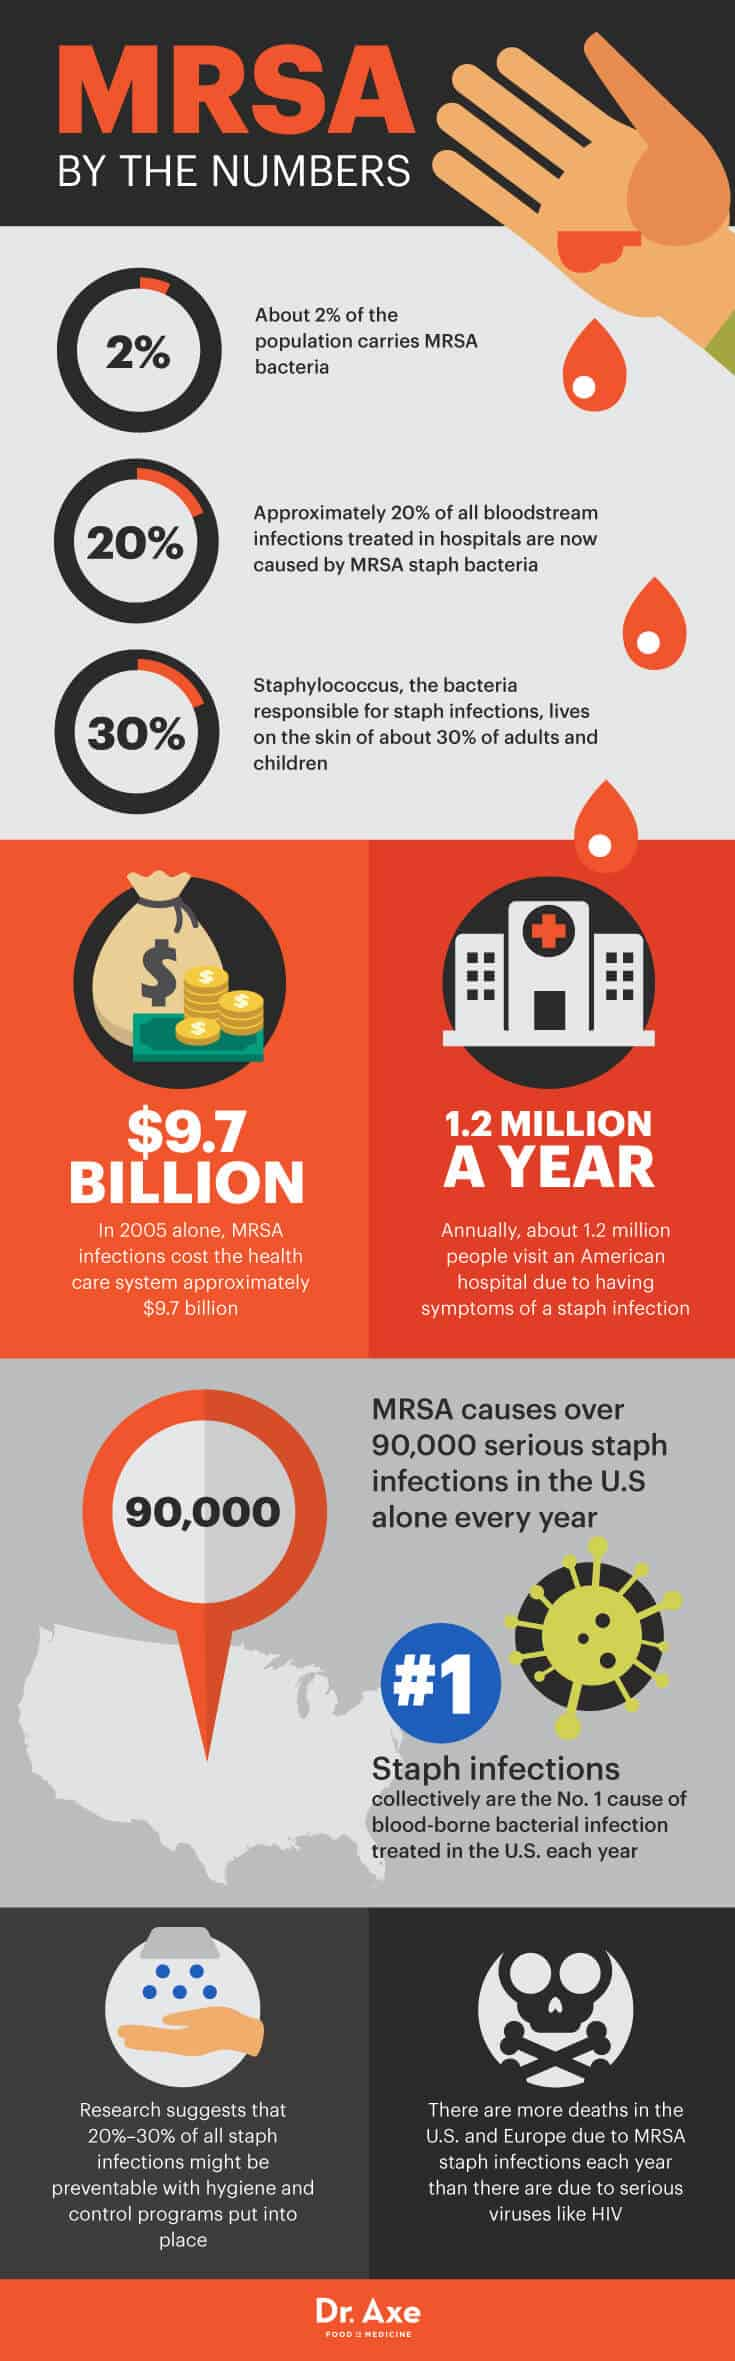 MRSA by the numbers - Dr. Axe